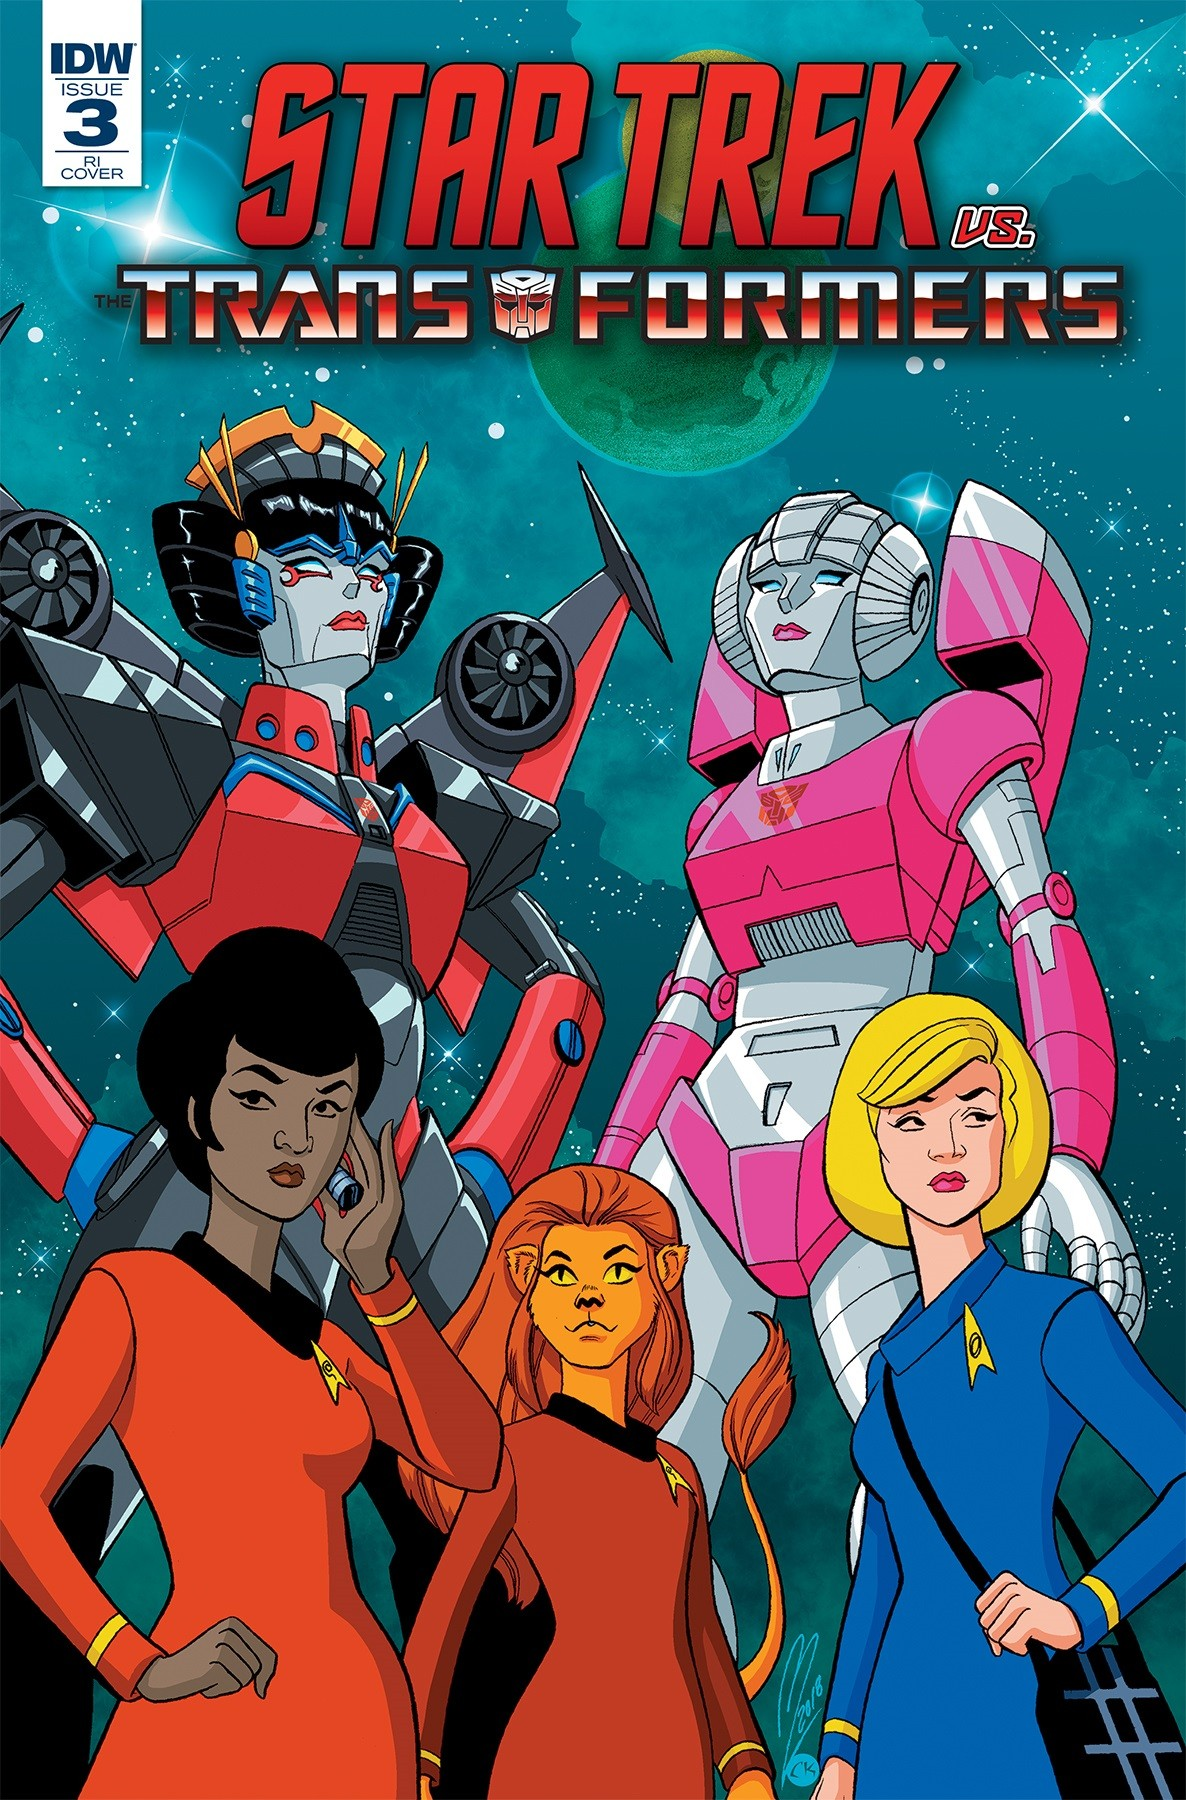 Transformers News: Retailer Incentive Variant Cover for IDW Star Trek Vs. Transformers #3 by Megan Levens